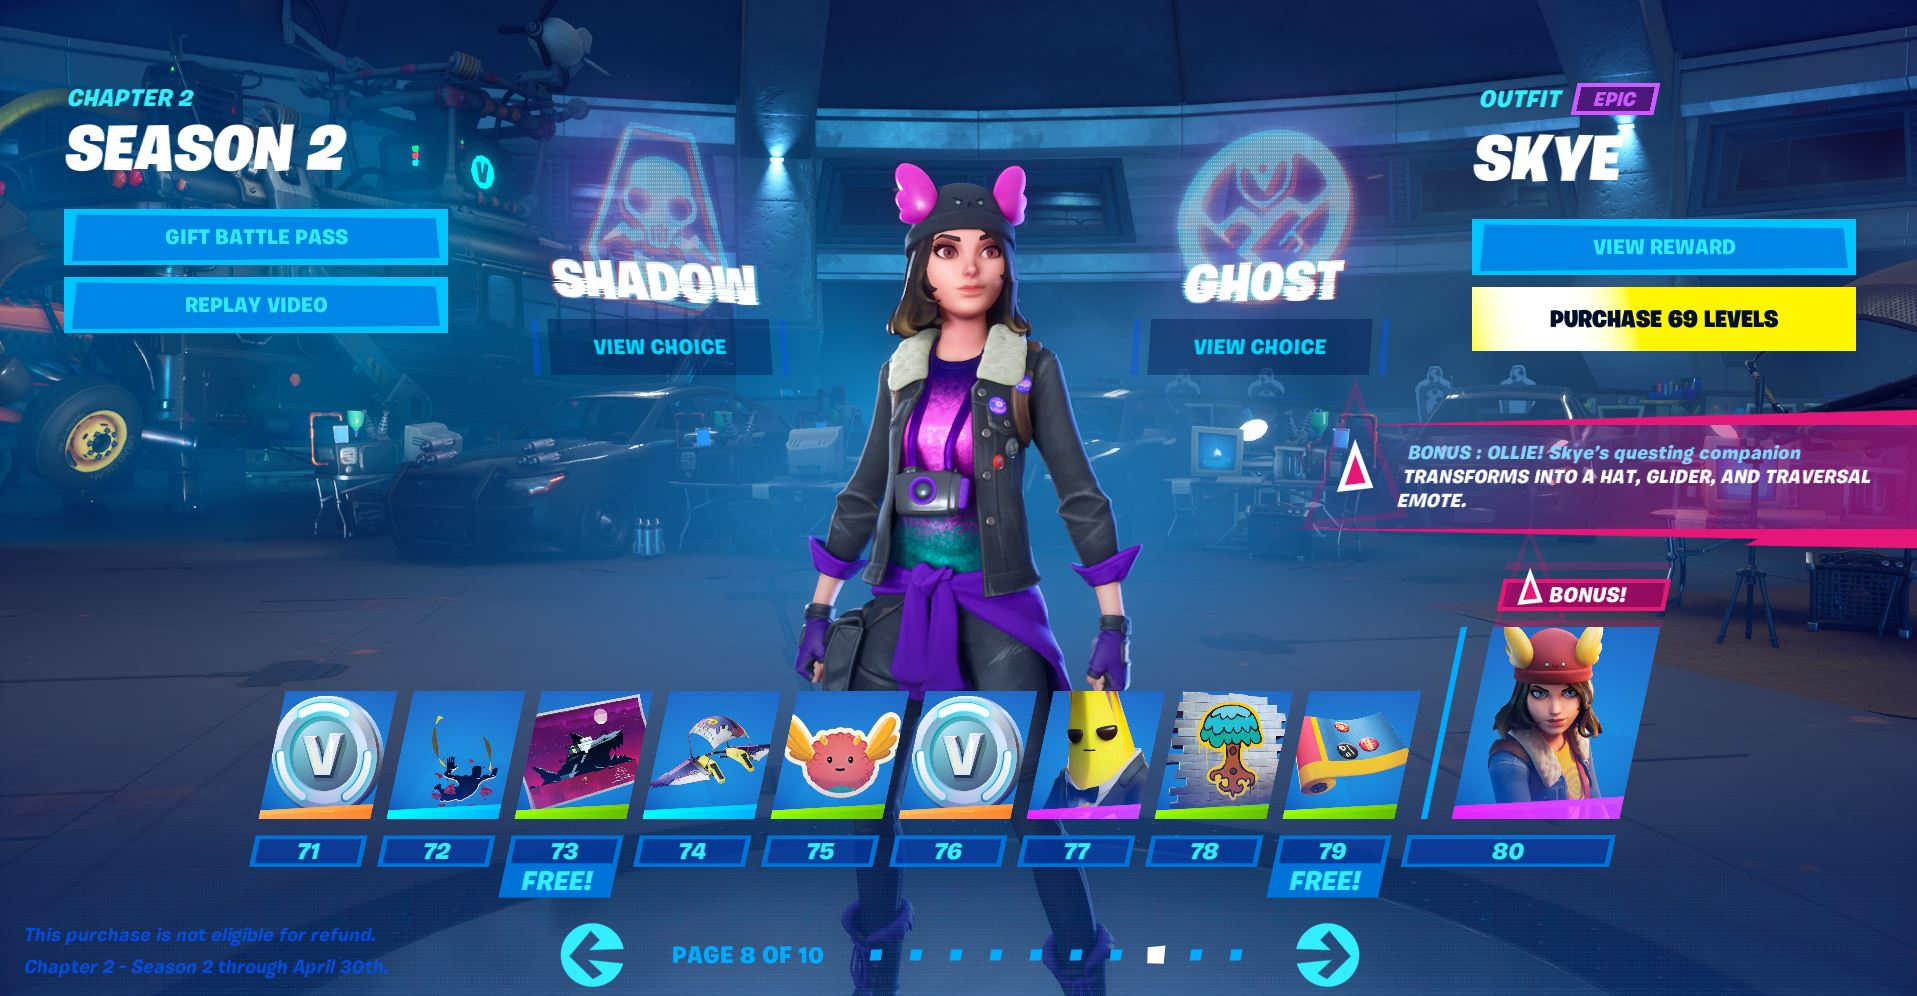 Skye Shadow Fortnite Skin Style